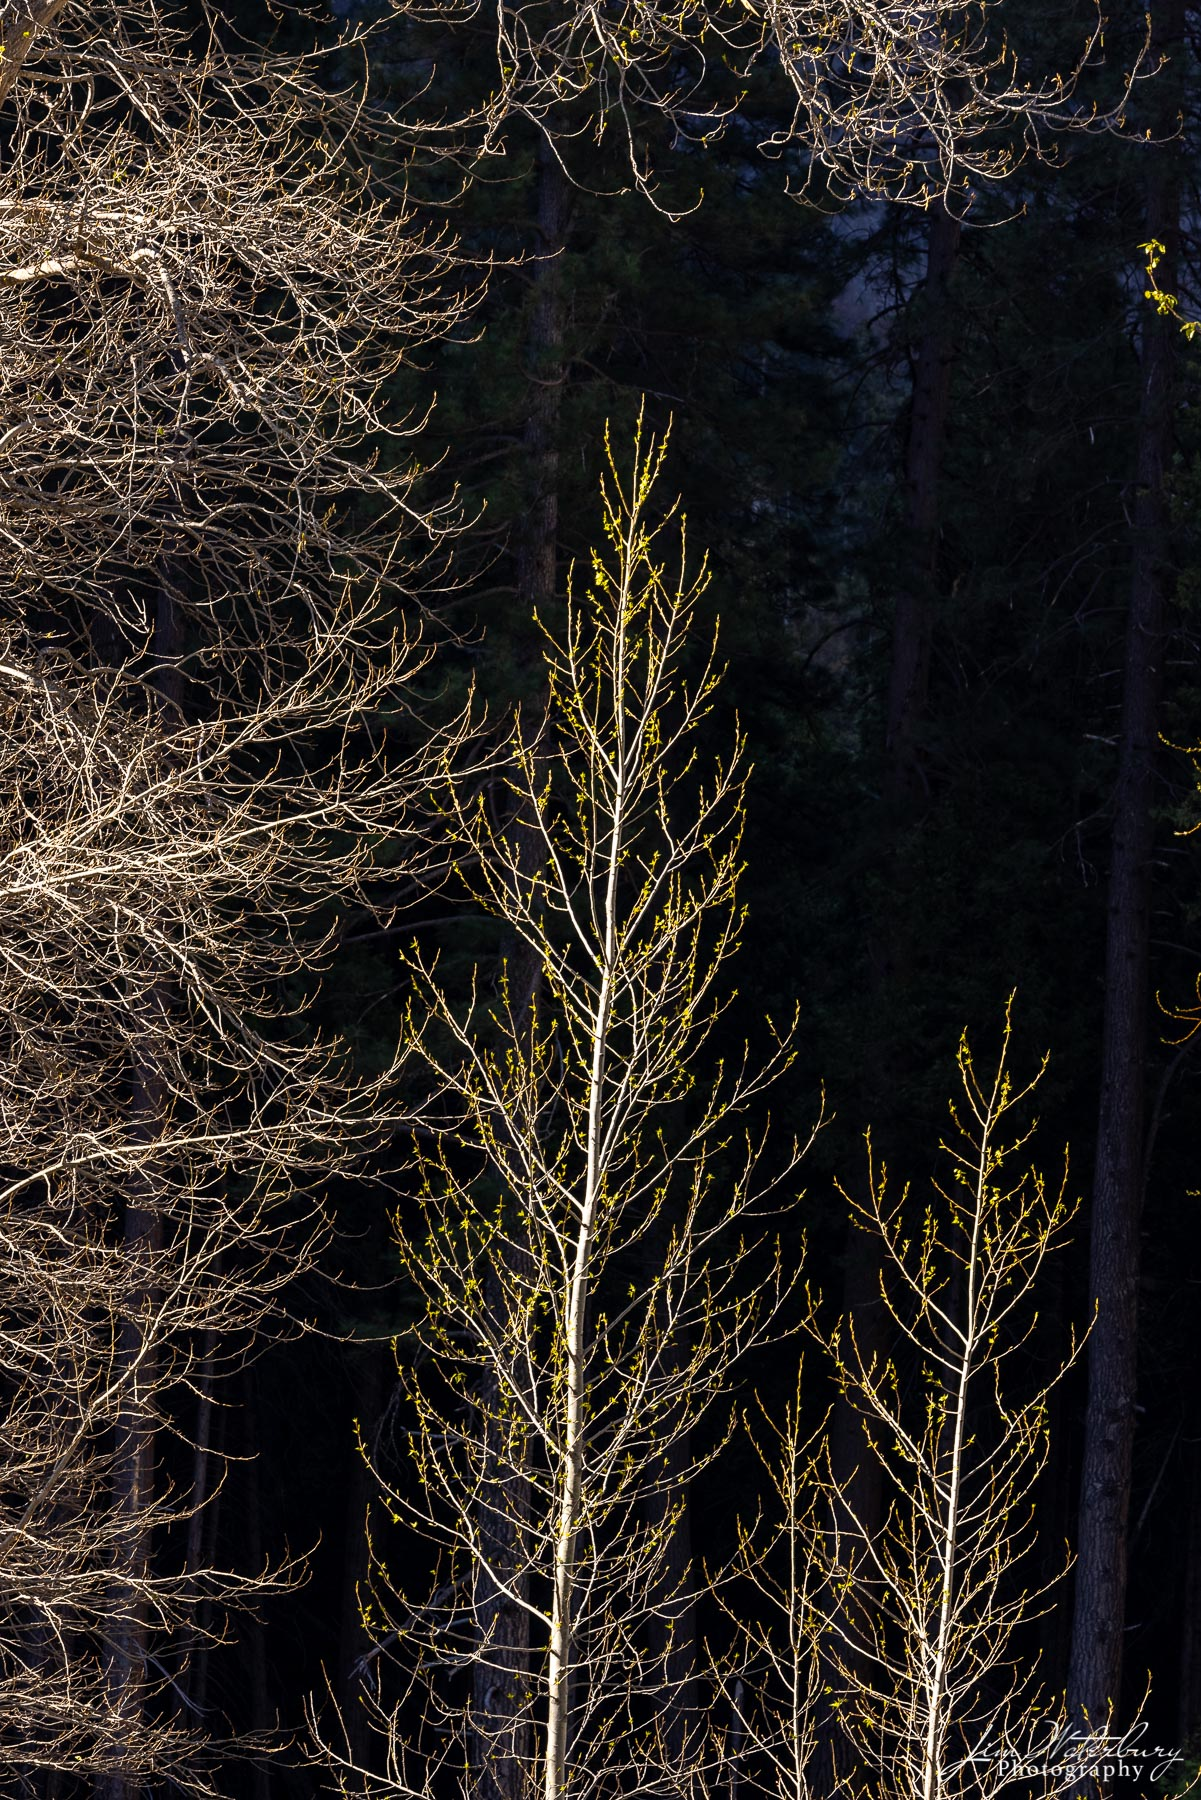 In early spring, small trees along the Merced River show the first signs of rebirth.